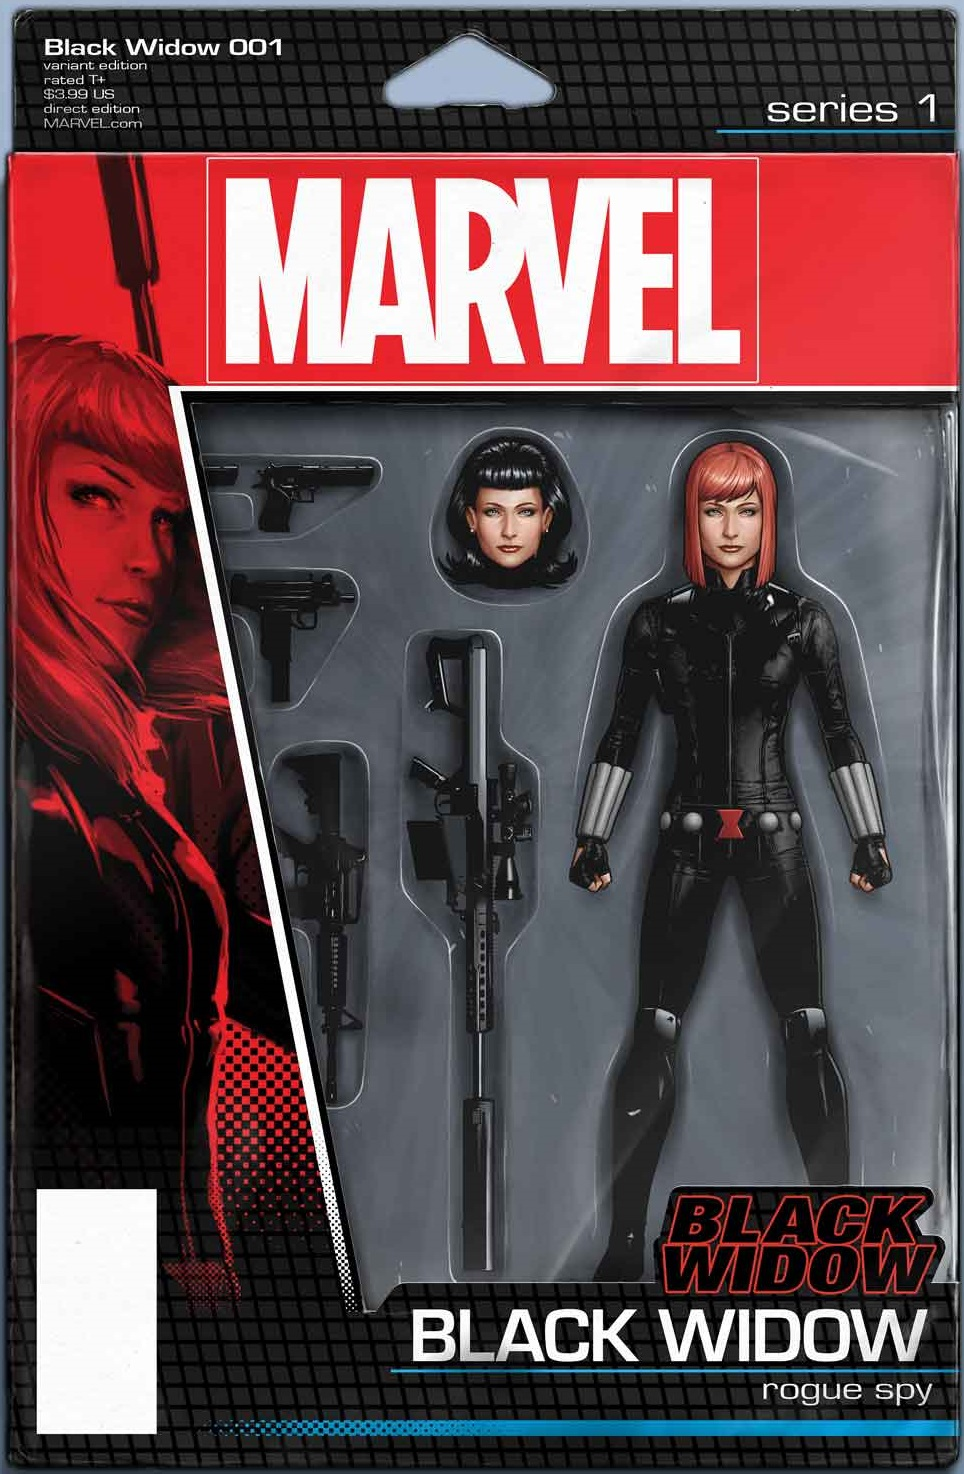 Black_Widow_1_Christopher_Action_Figure_Variant